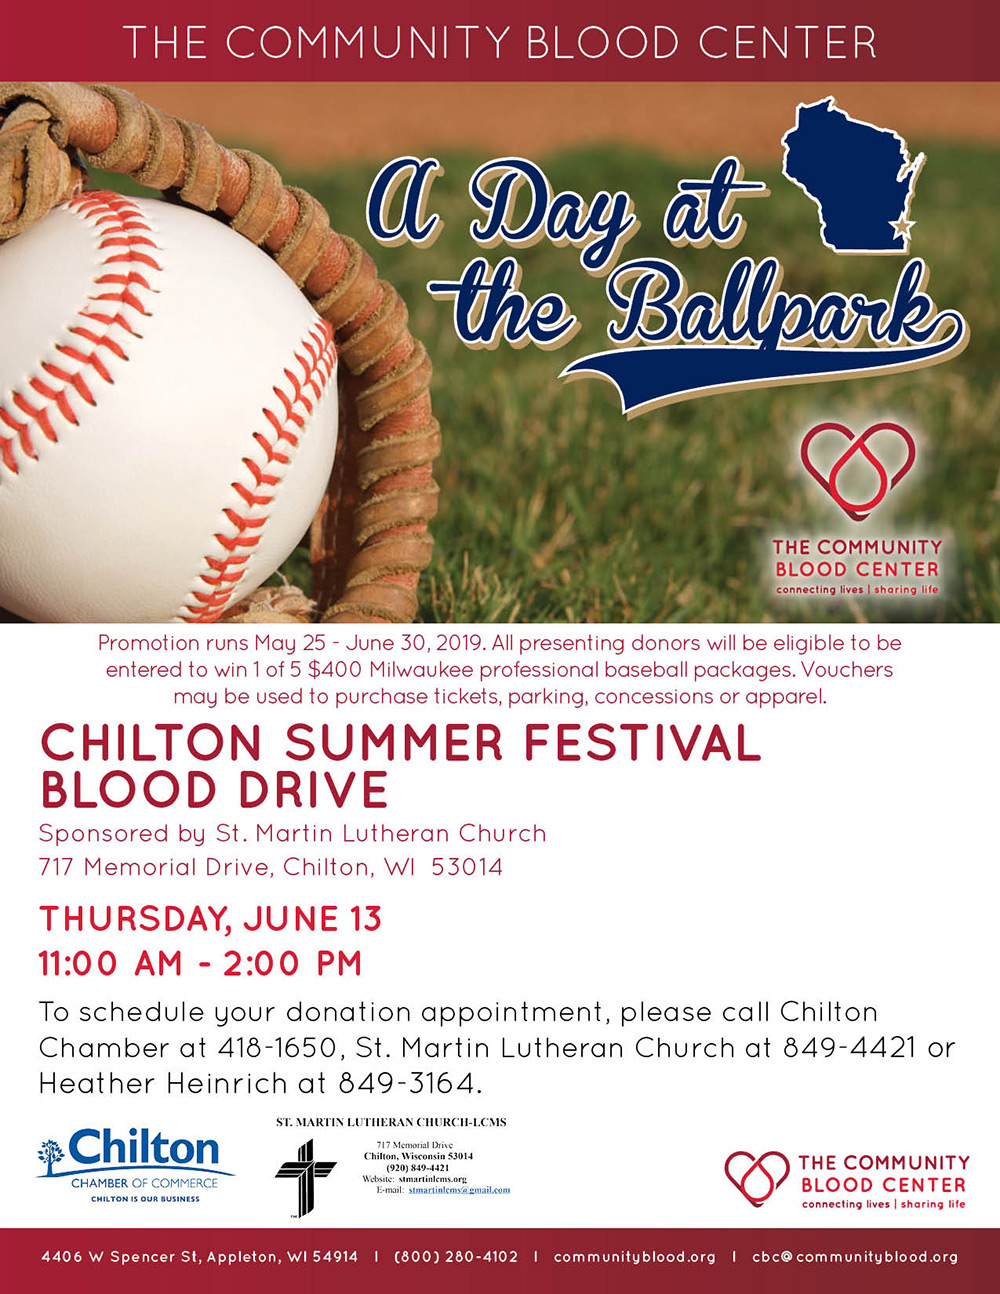 June 13, 2019 Community Blood Center Blood Drive in Chilton Wisconsin sponsored by St. Martin Lutheran Church